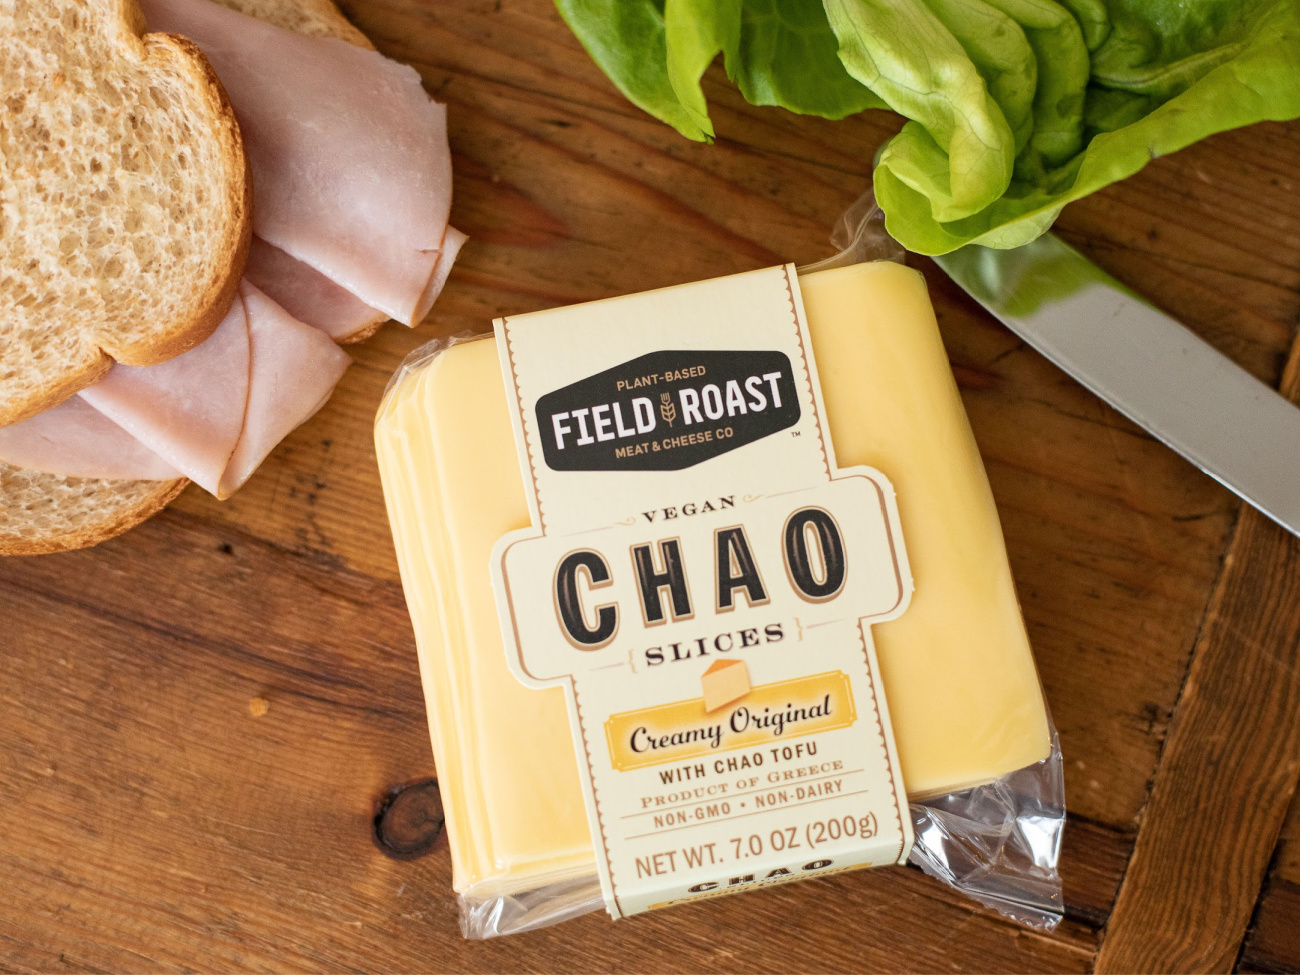 Field Roast Chao Slices Just $1.24 At Publix on I Heart Publix